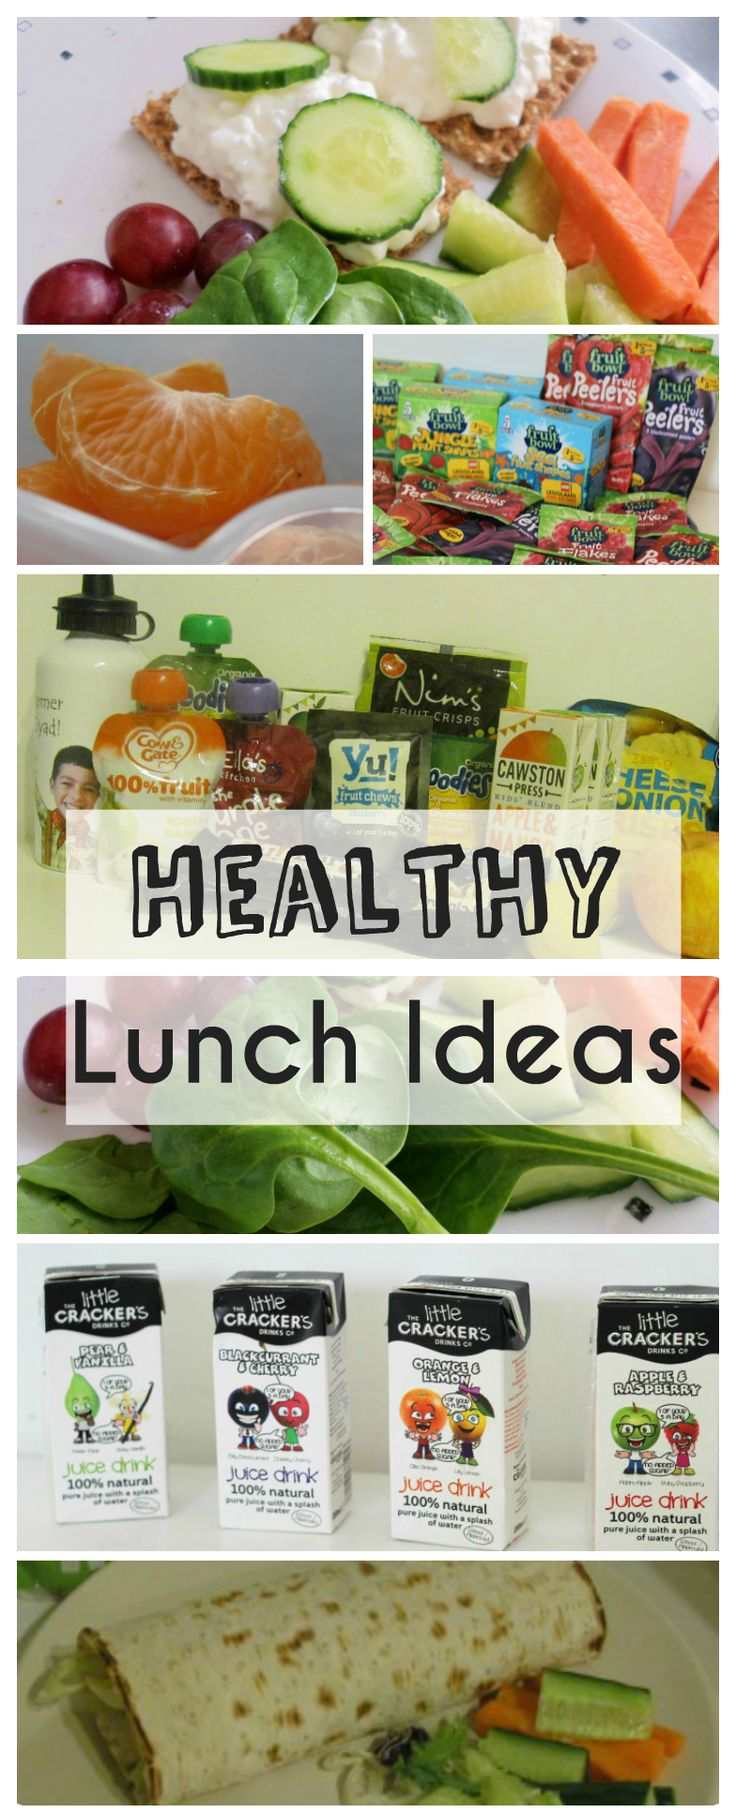 Healthy lunch ideas for back to school - I'm always looking for more variety for the kids lunchboxes!